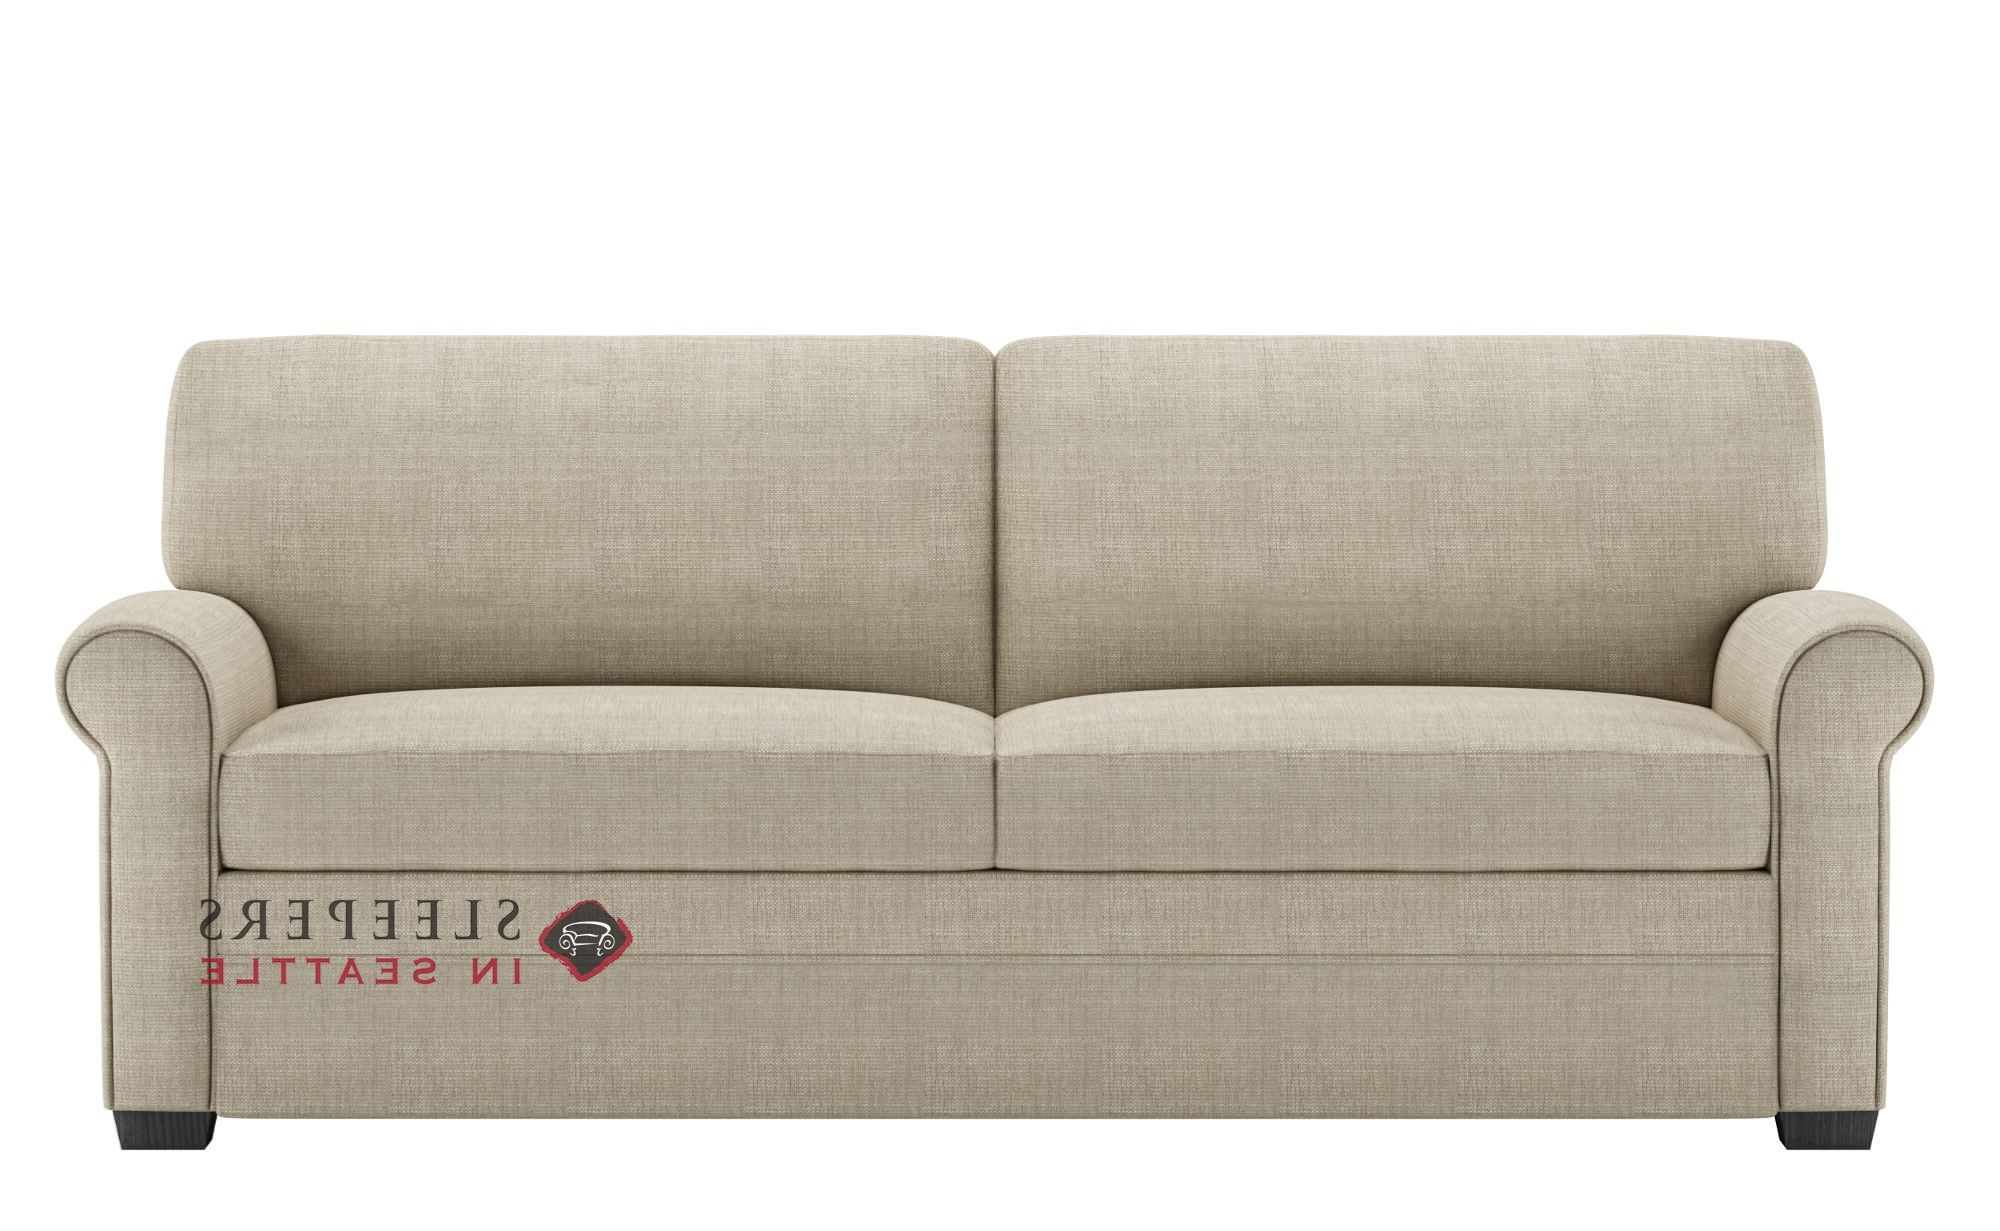 2019 Customize And Personalize Gaines Multiple Sizes Available Fabric With Regard To Gina Grey Leather Sofa Chairs (View 2 of 20)